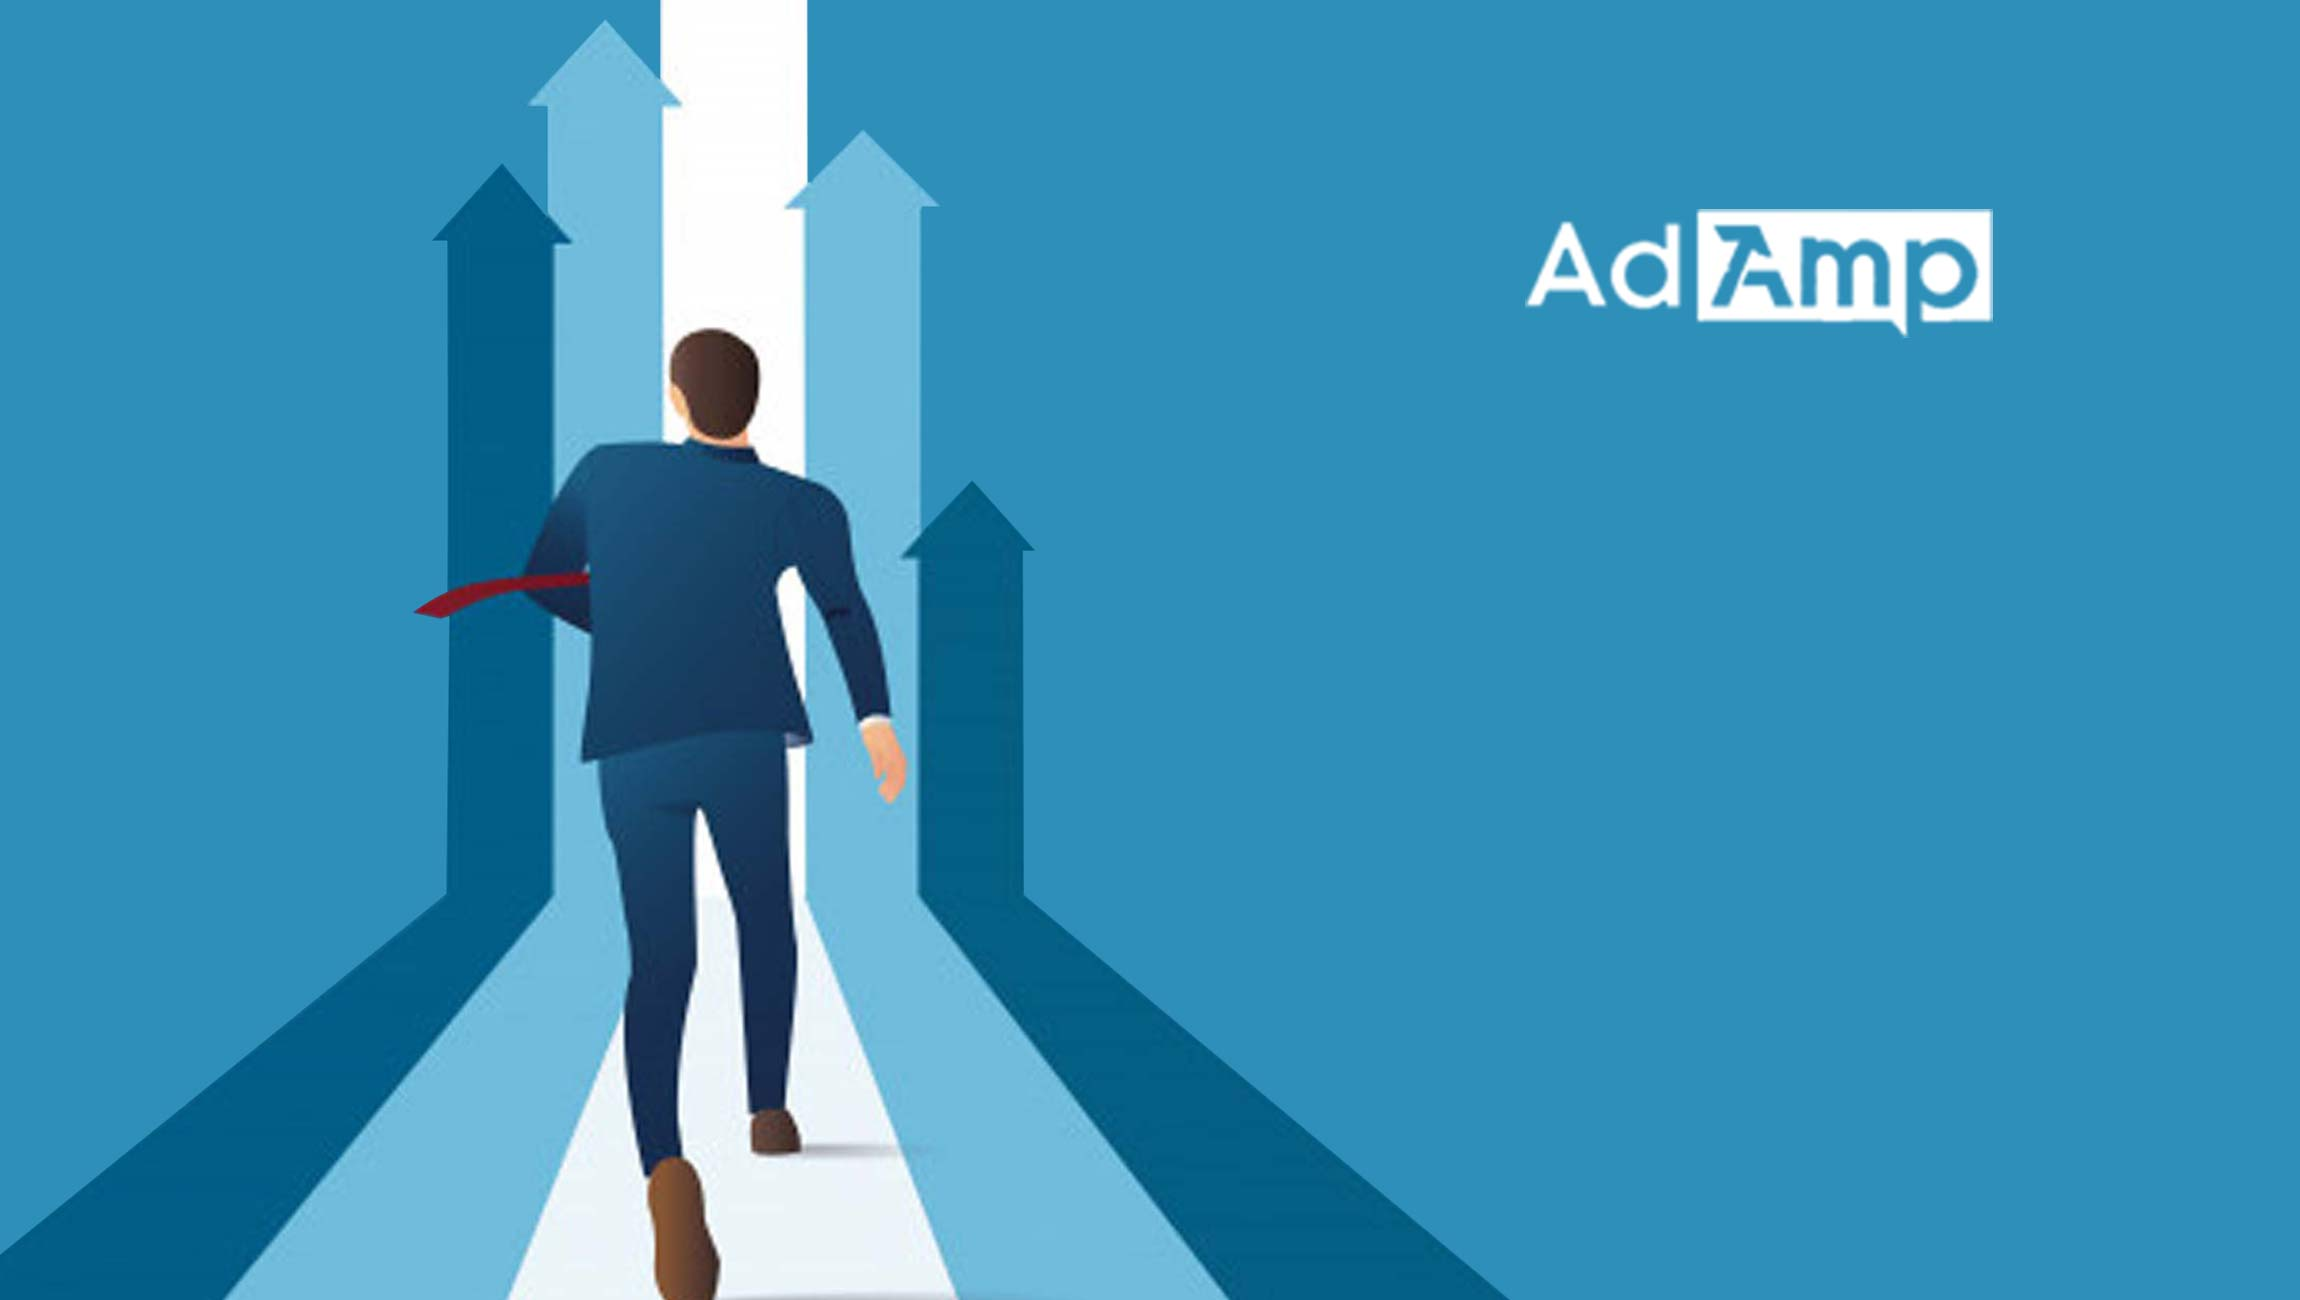 Audience Platform and AdAmp Deliver One-Stop Solution to Bring Television Advertising to Small and Mid-sized Businesses